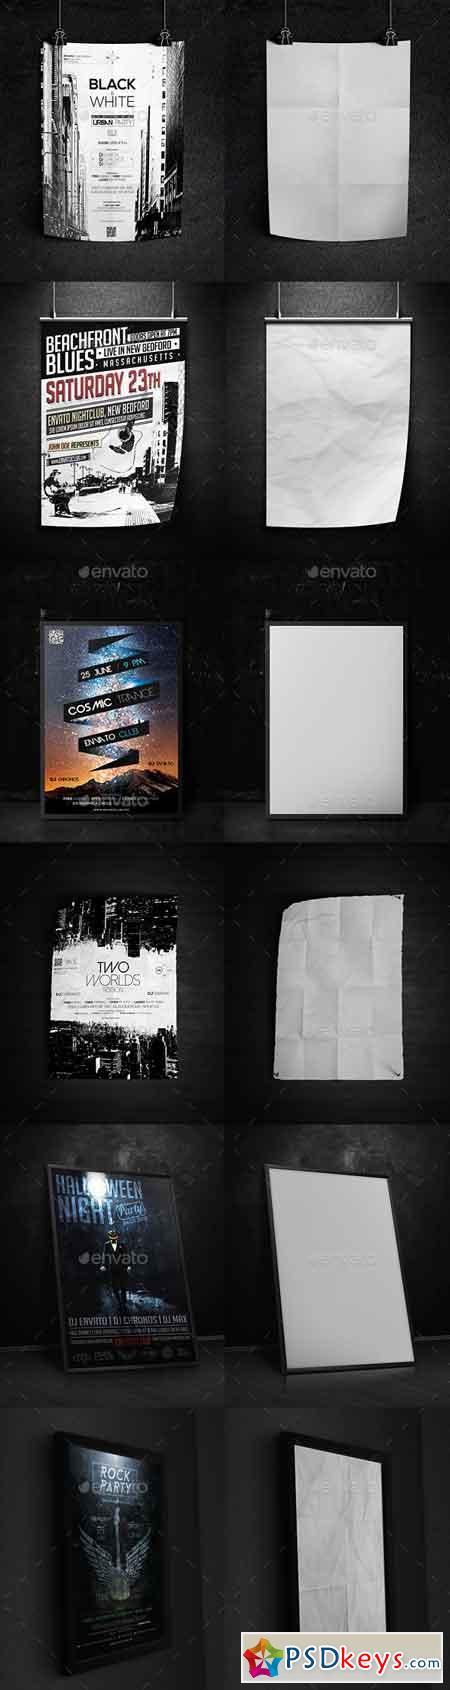 Dark Poster Mock-Up 13495004